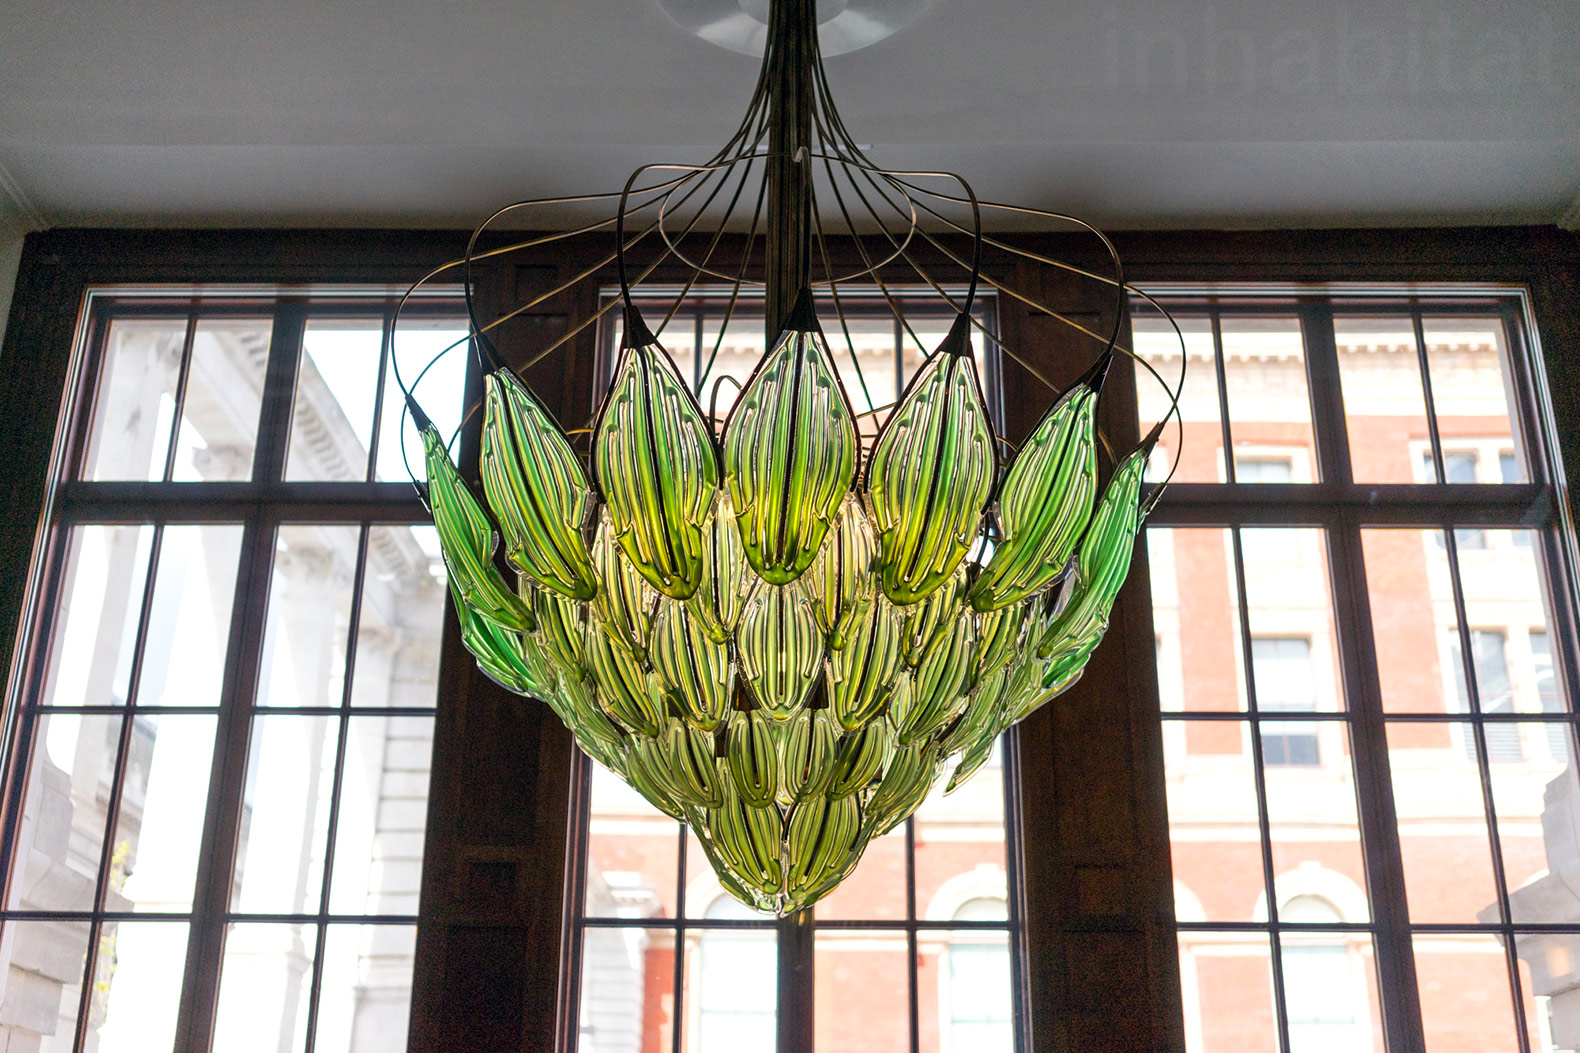 Julian Melchiorri, Breathe Chandelier, Algae Chandelier, Algae Chandelier  That Purifies The Air,